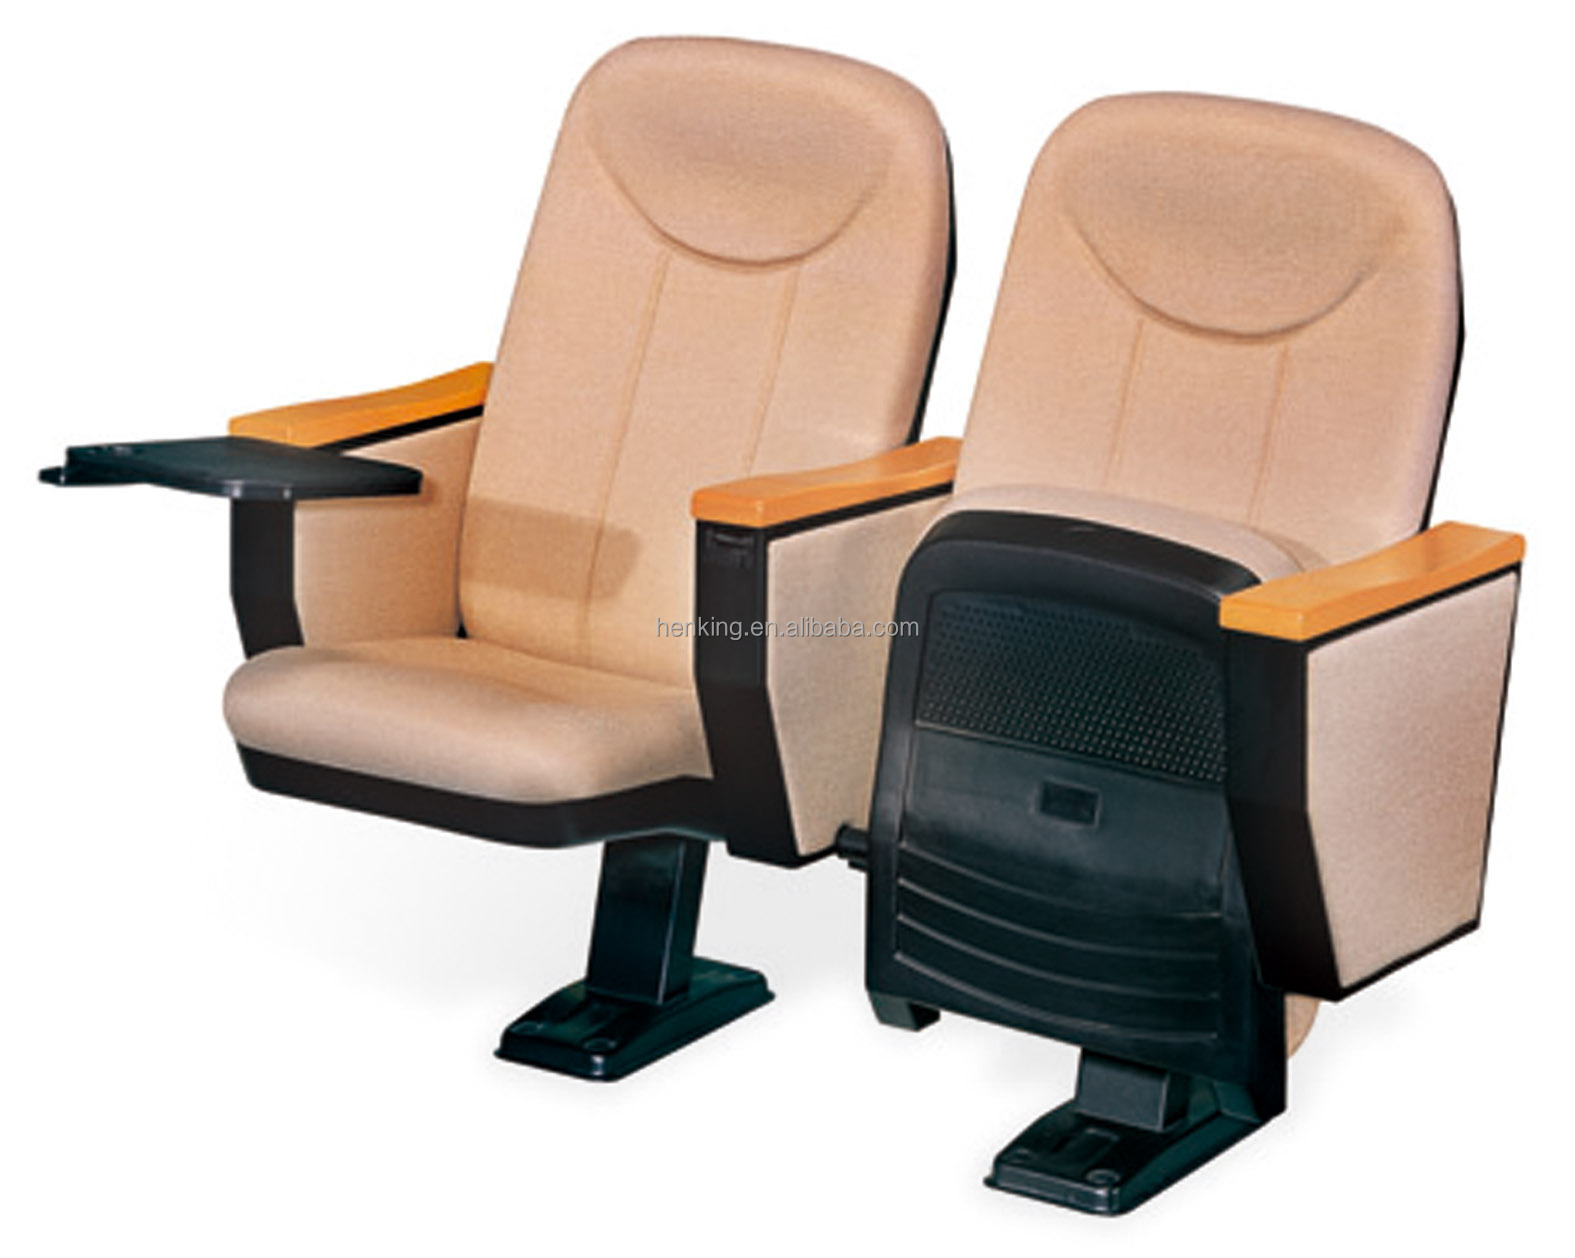 Theater Seat Covers Theater Seat Covers Suppliers and